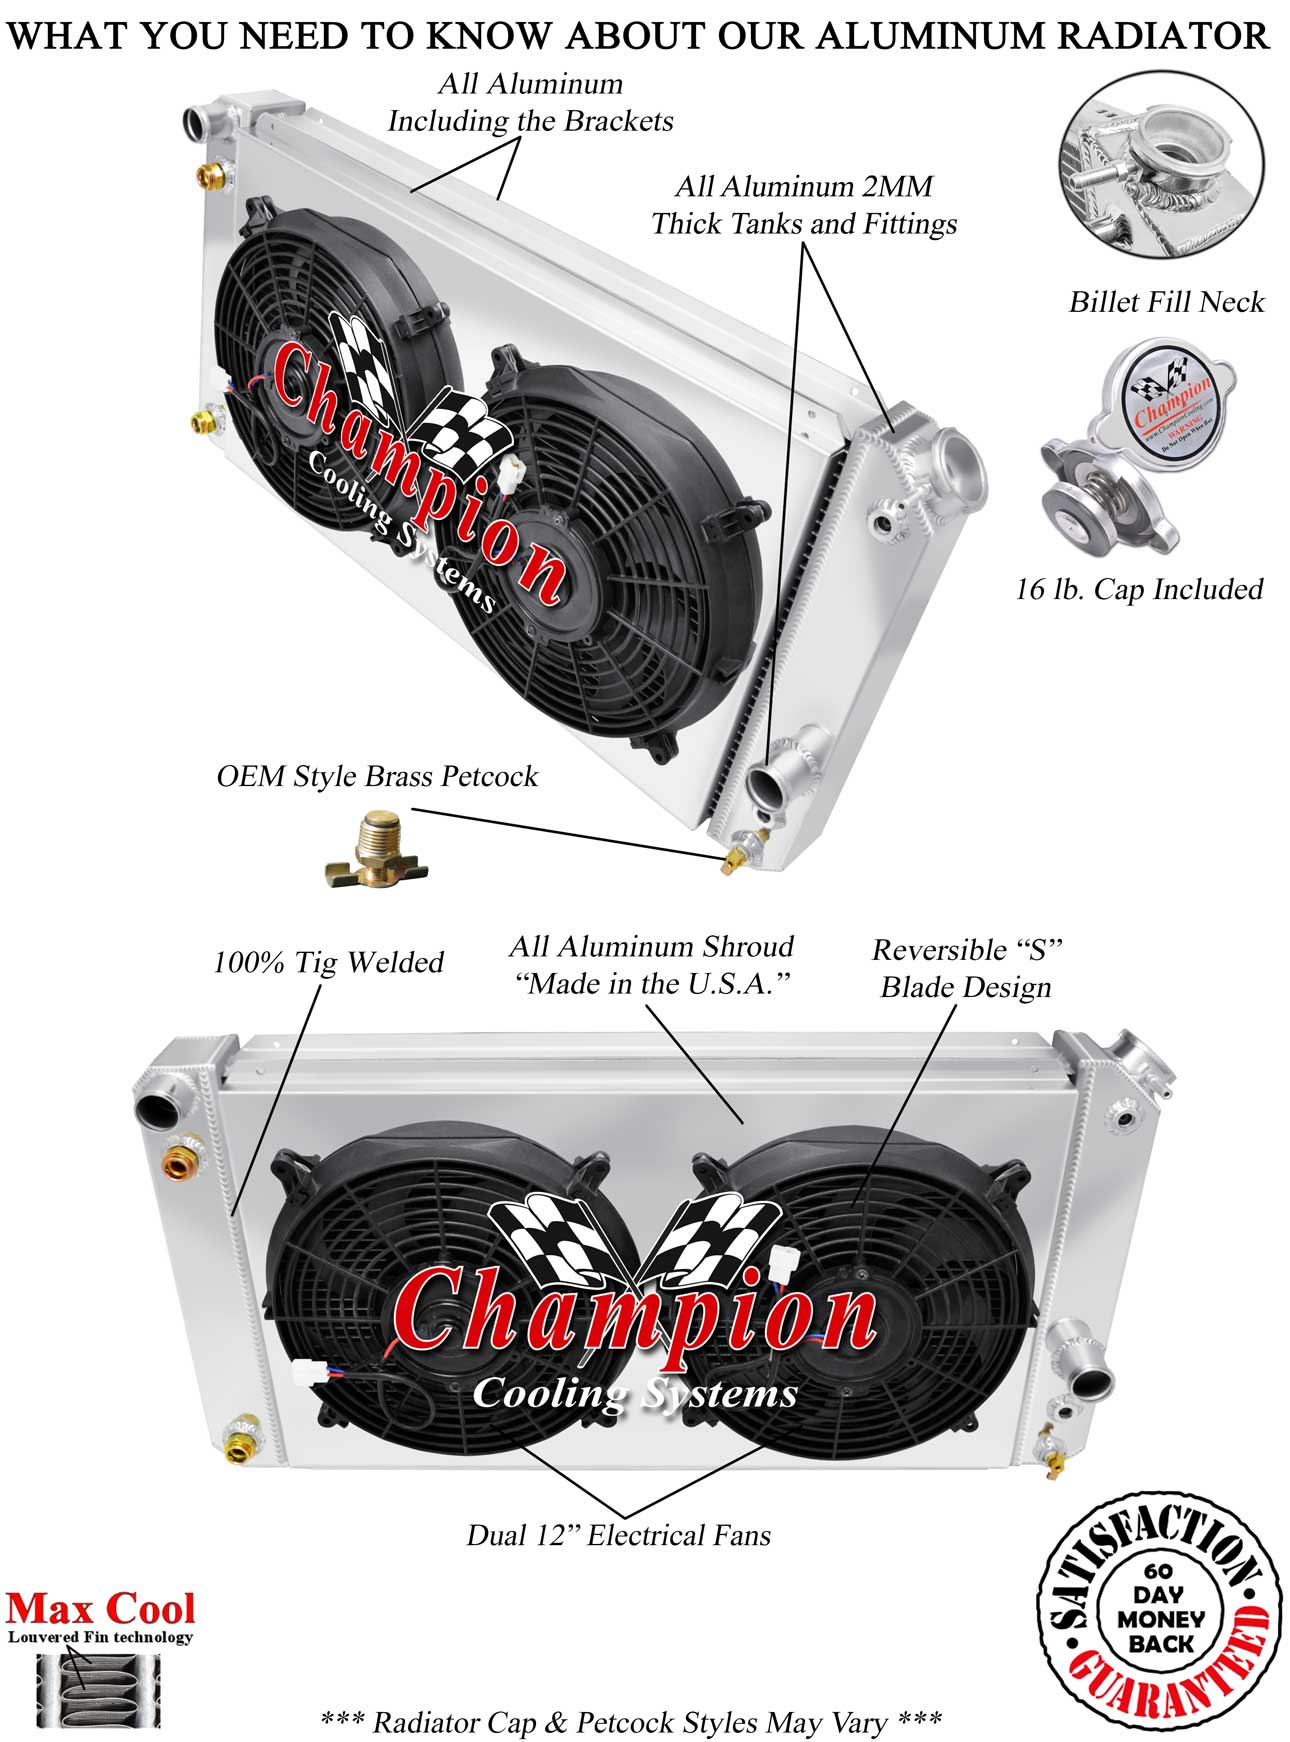 https://www.championcooling.com/photos/Photos%20White/With%20Fans/W-Shroud/1826/2x12/1826_2fs_d_w.jpg